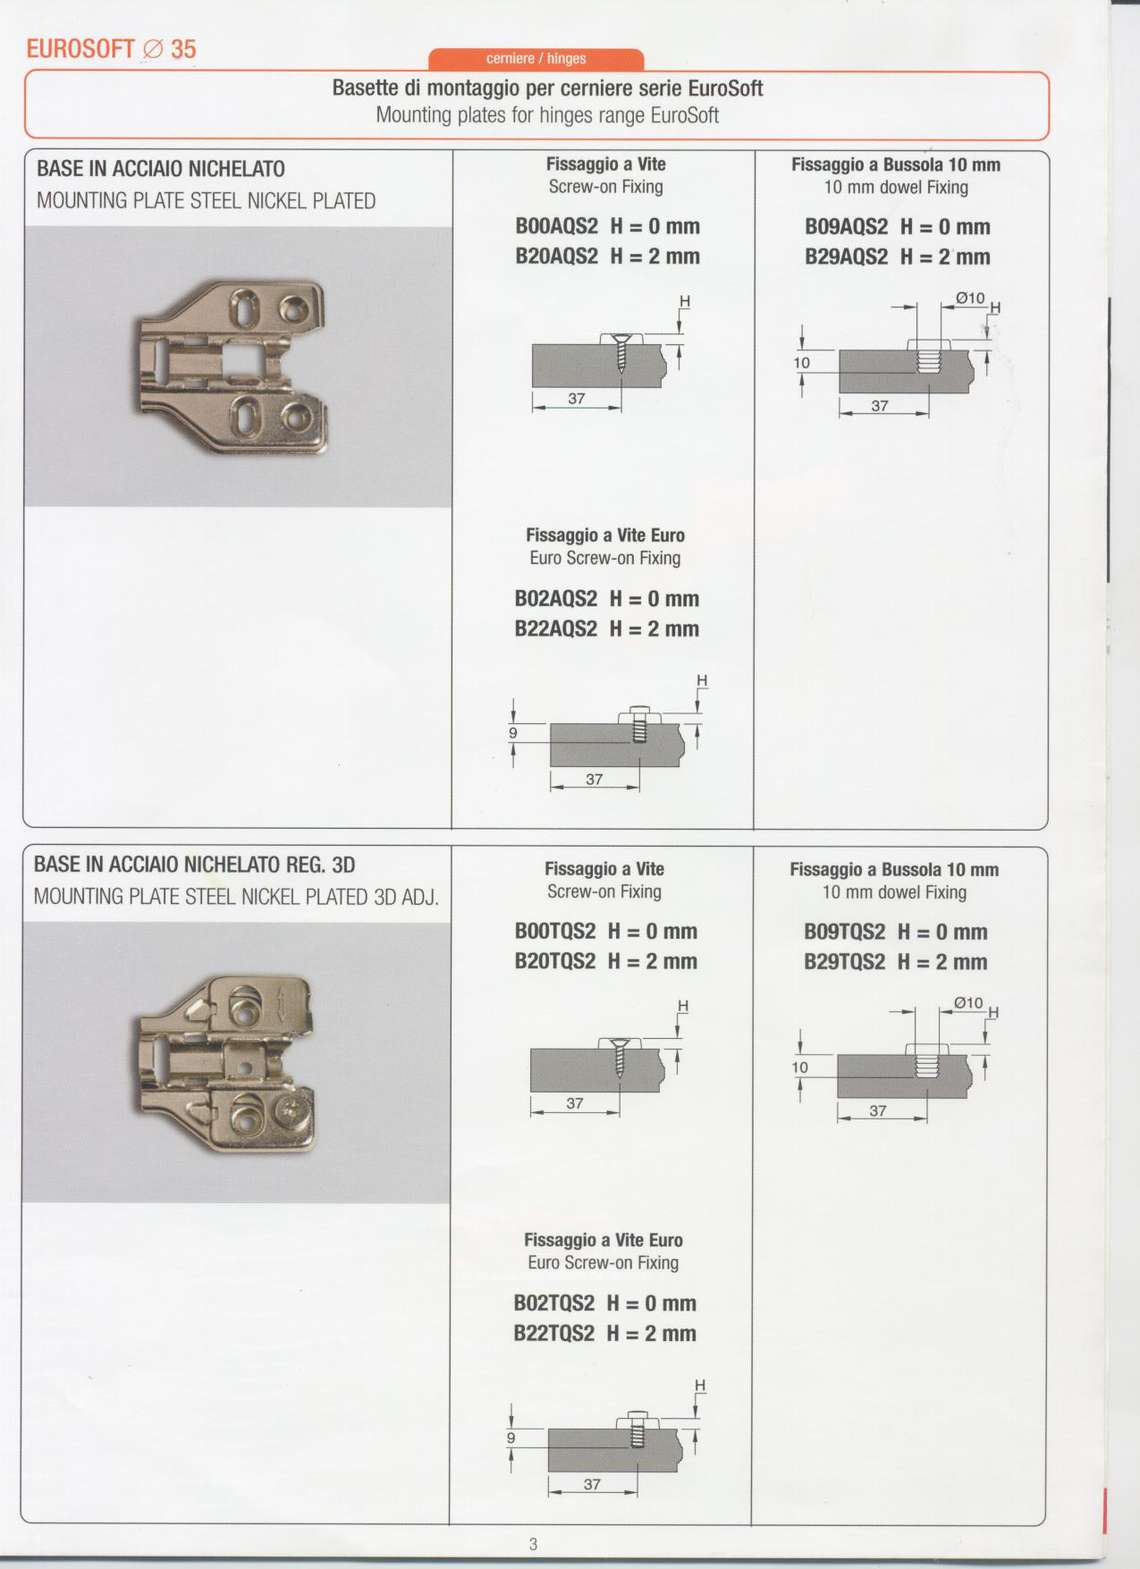 soft-closing-hinges-catalogue_178_001.jpg